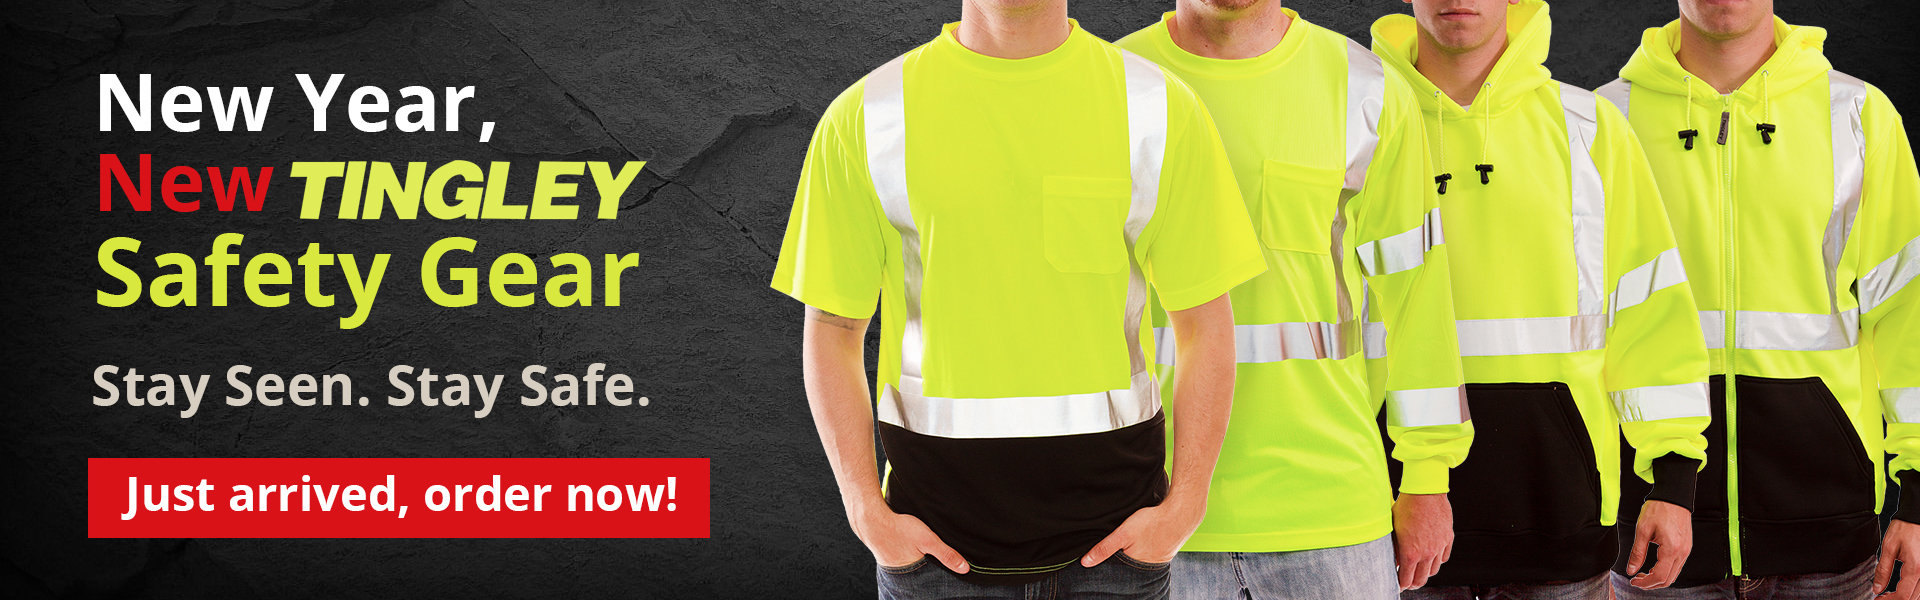 New Tingley Safety Gear